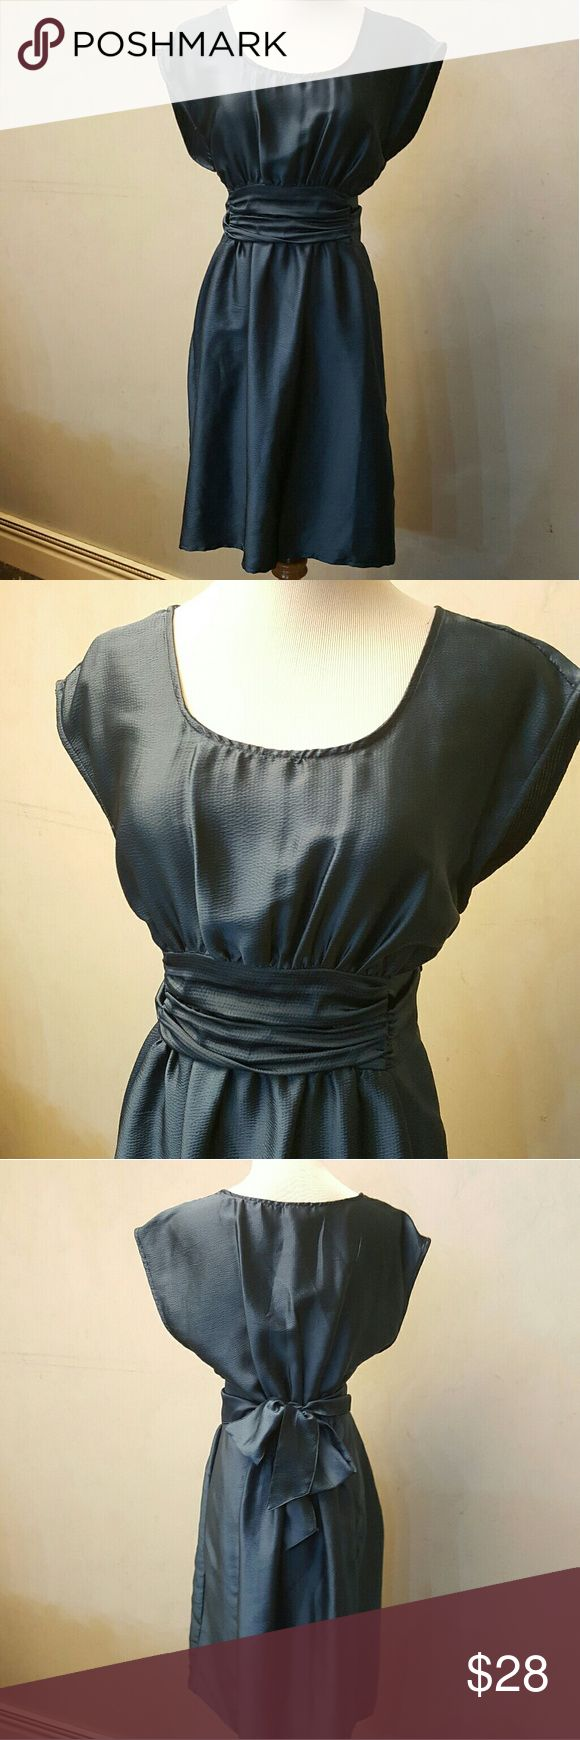 H&M Tie back dress H&M dress with a tie in the back that can not be removed. In perfect condition 100% polyester H&M Dresses Midi